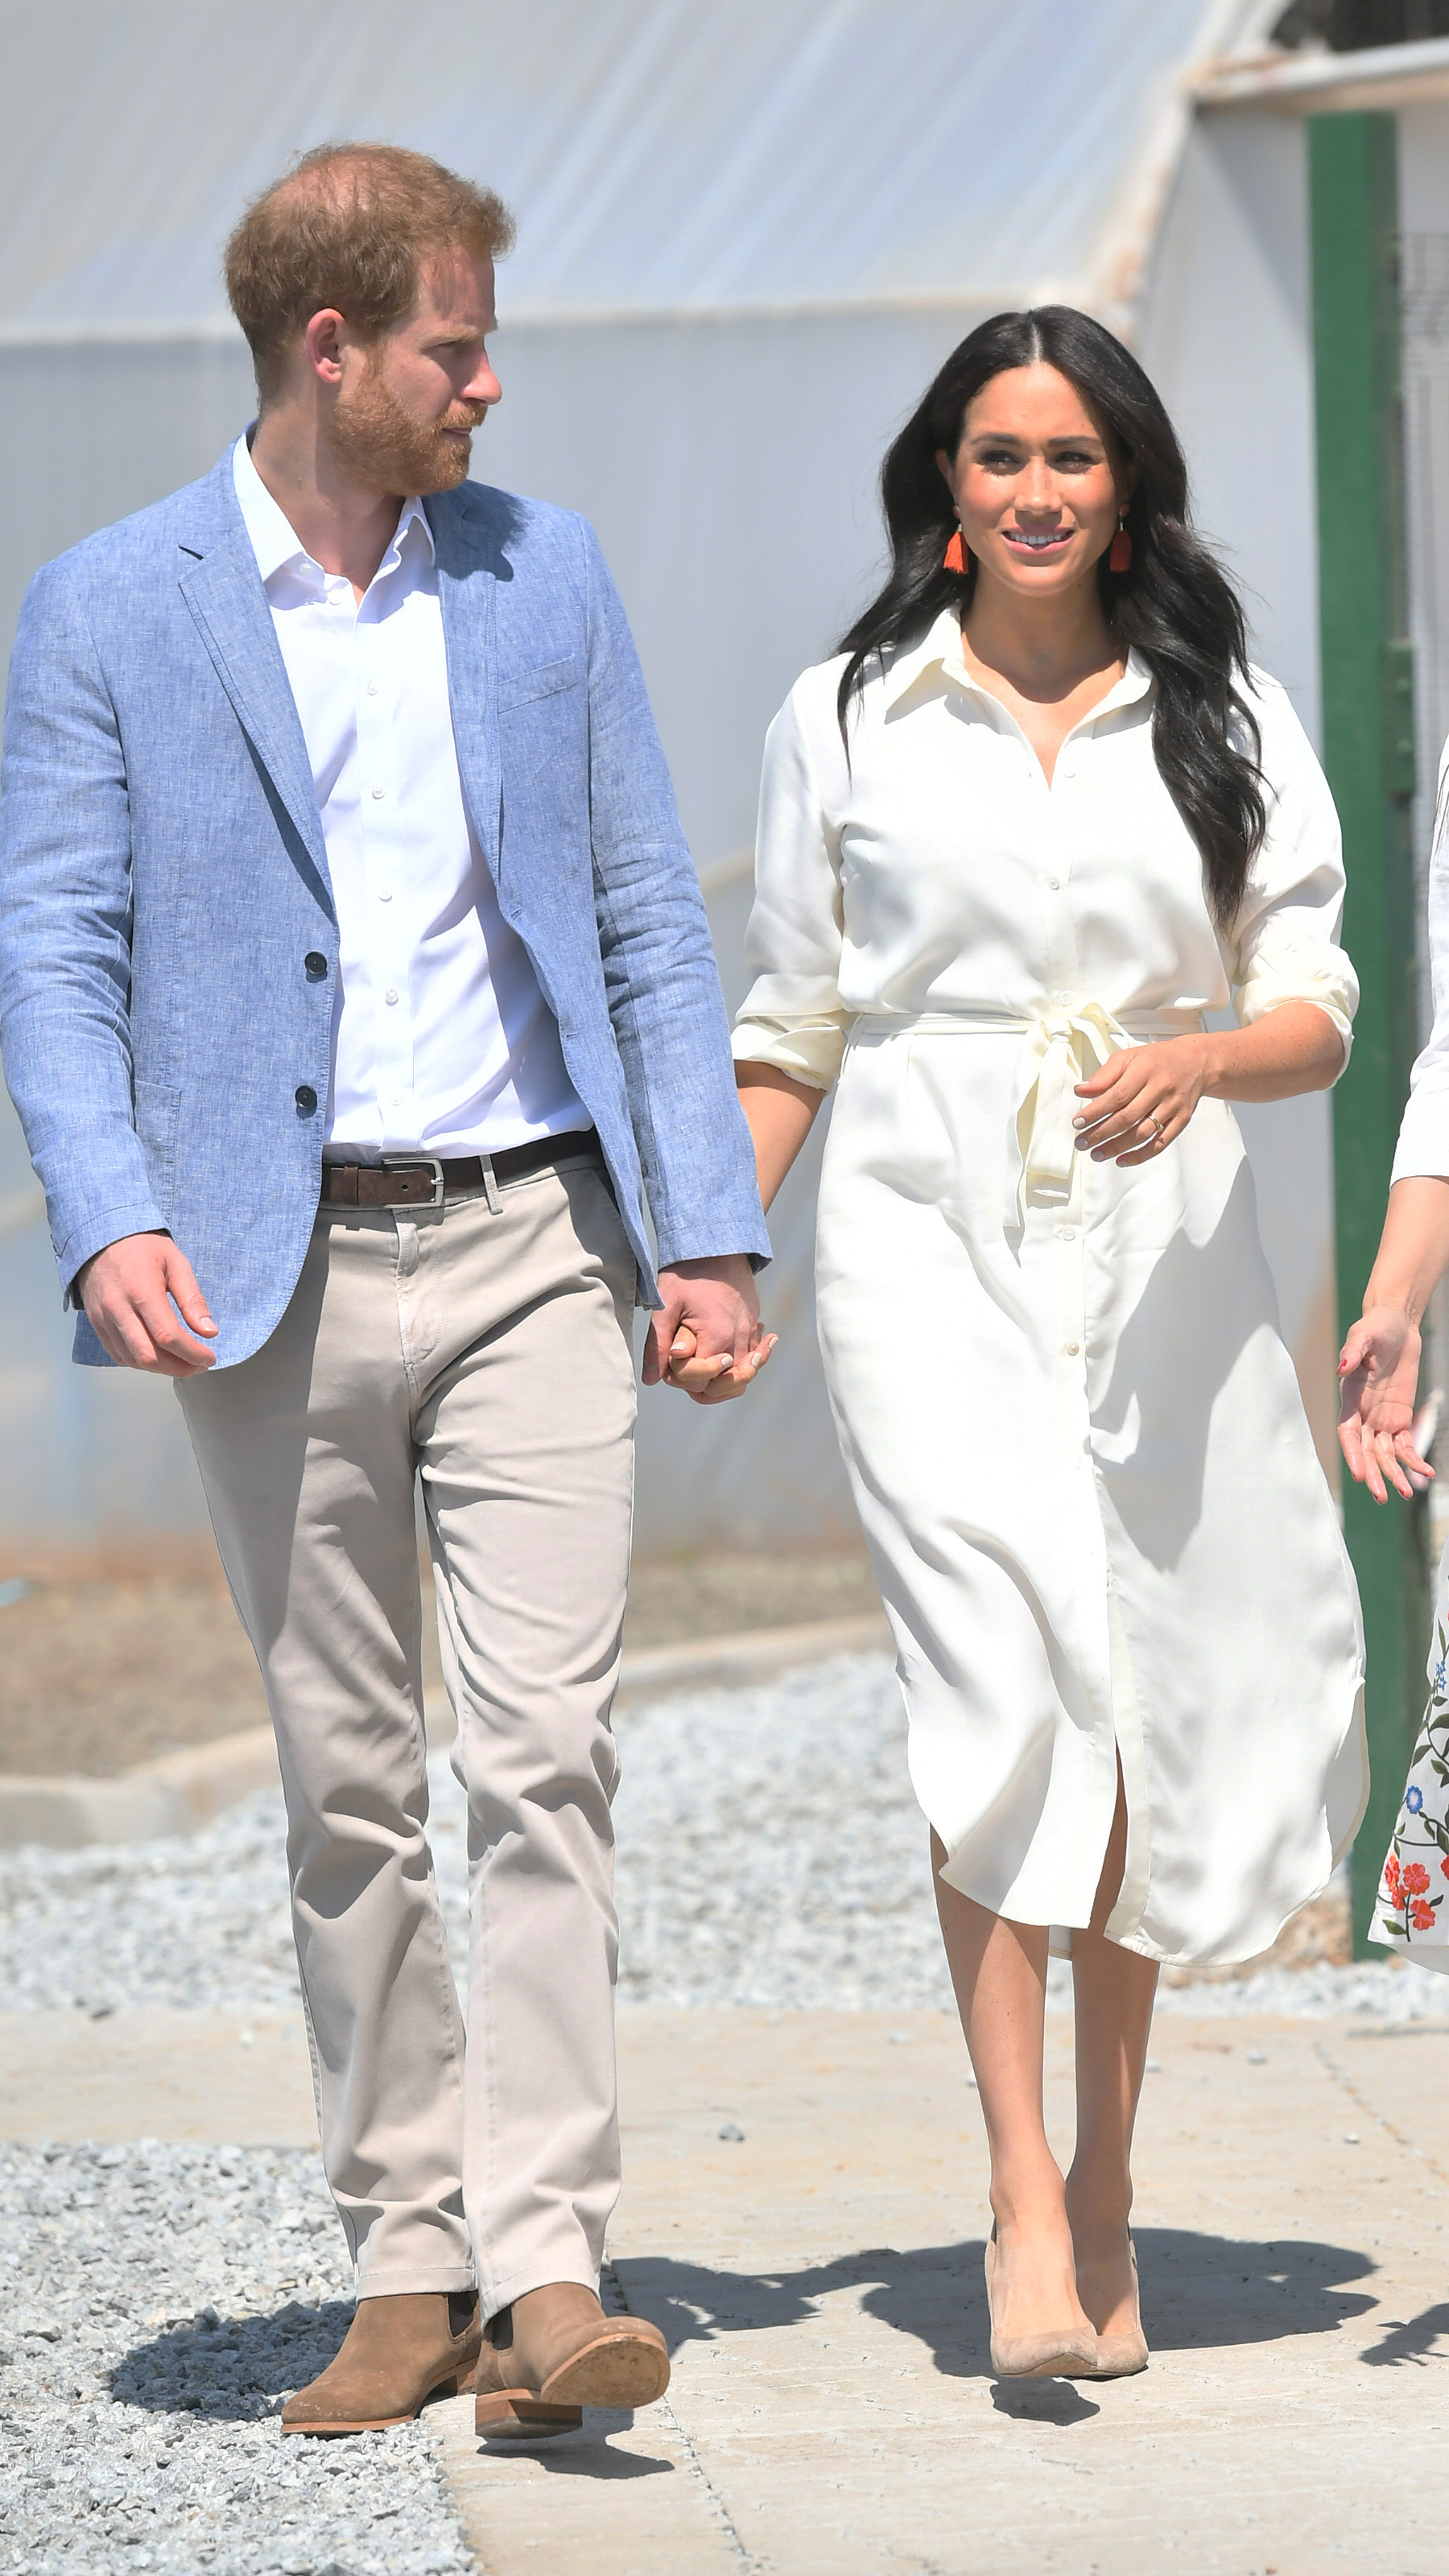 Prince Harry, Duke of Sussex and Meghan, Duchess of Sussex visit the township of Tembisa during their royal tour of South Africa.